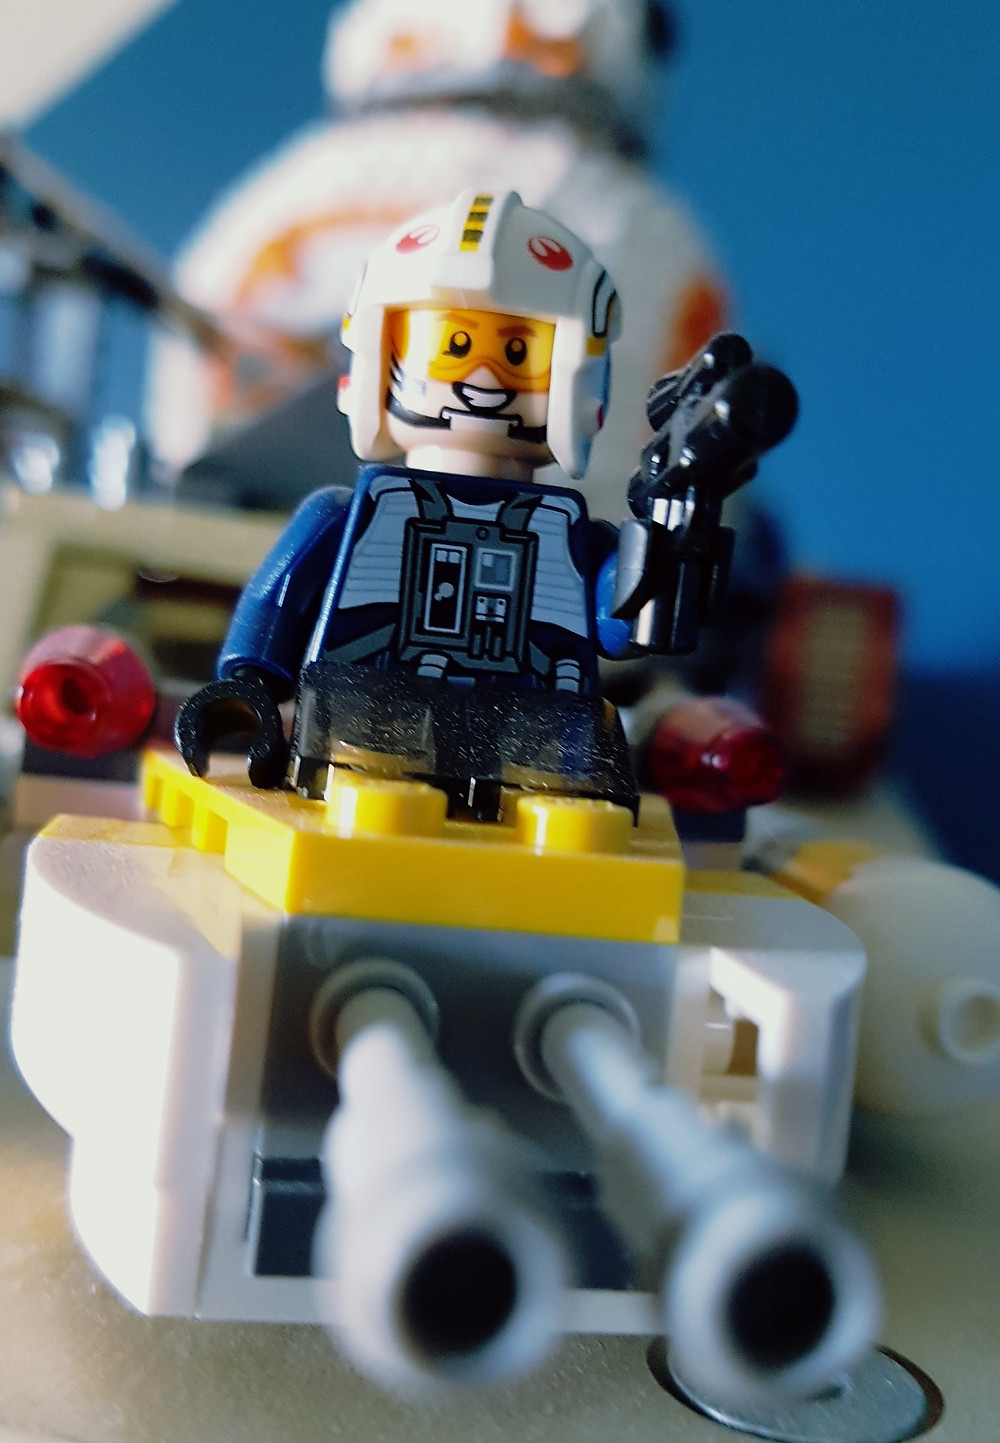 A smiling Lego Star Wards figurine on a speeder with more Lego Star Wars models in the background.